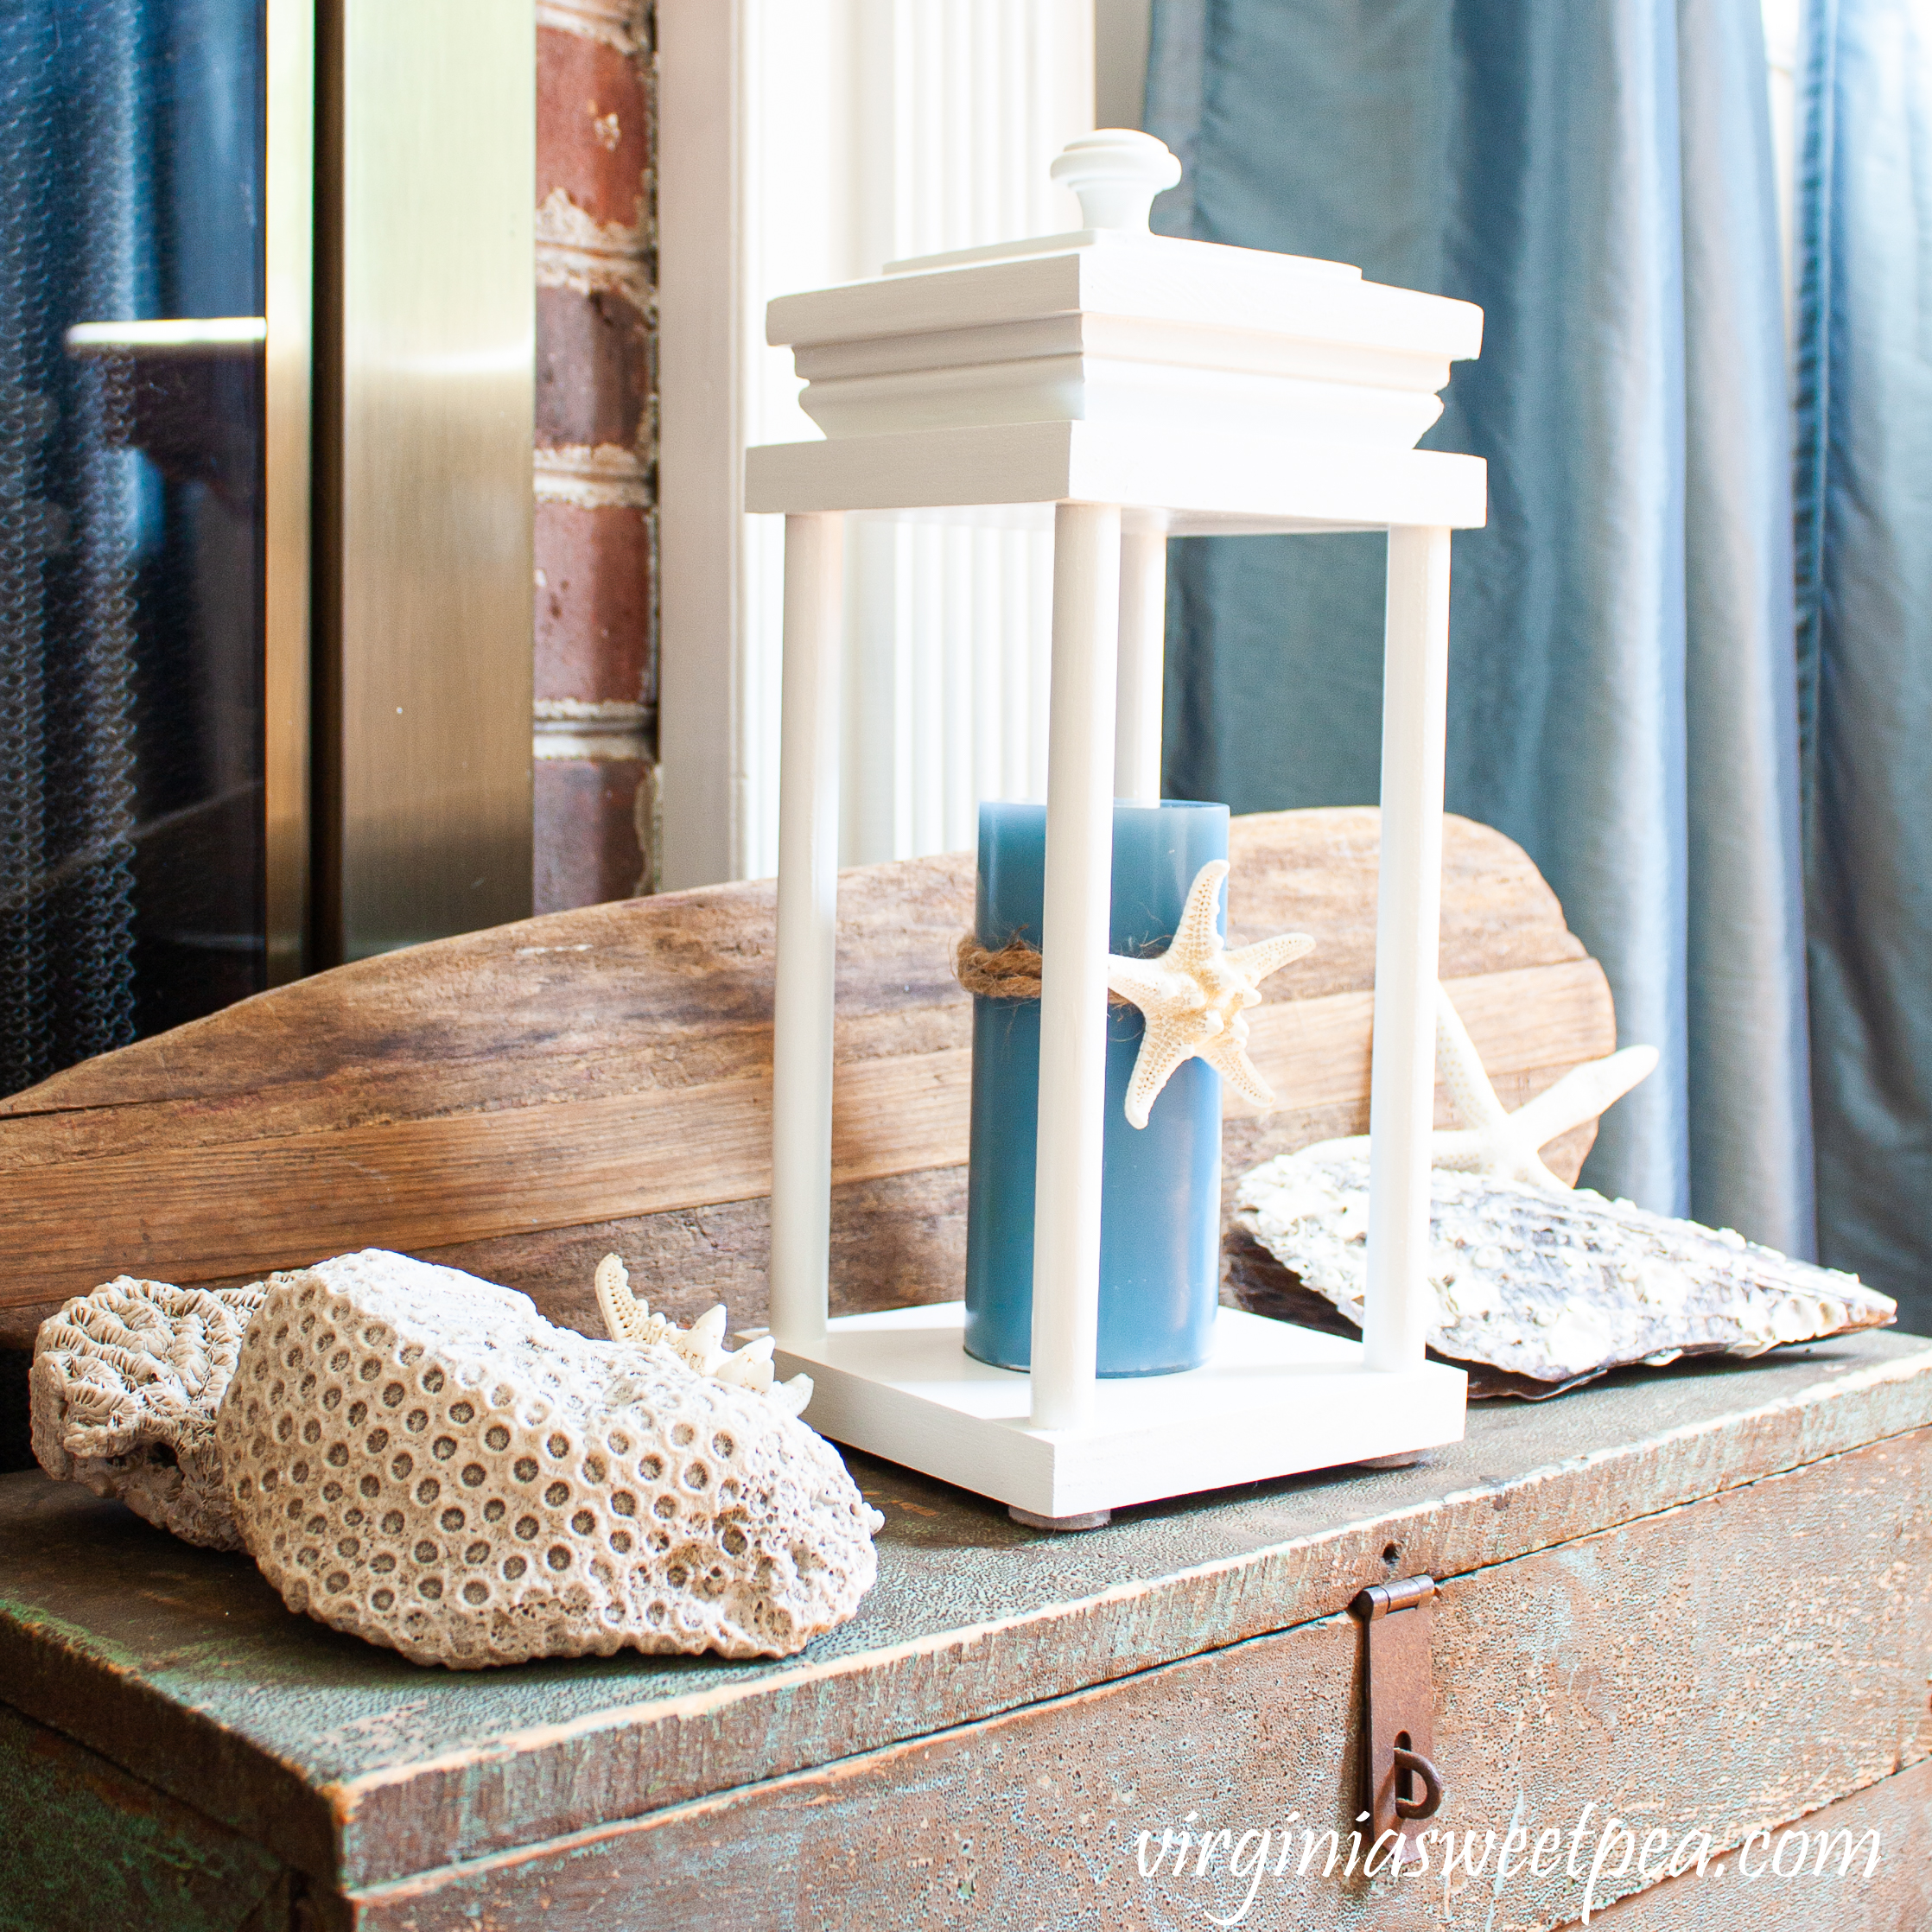 Coastal themed summer vignette with a lantern, shells, coral, and an old wooden oar.